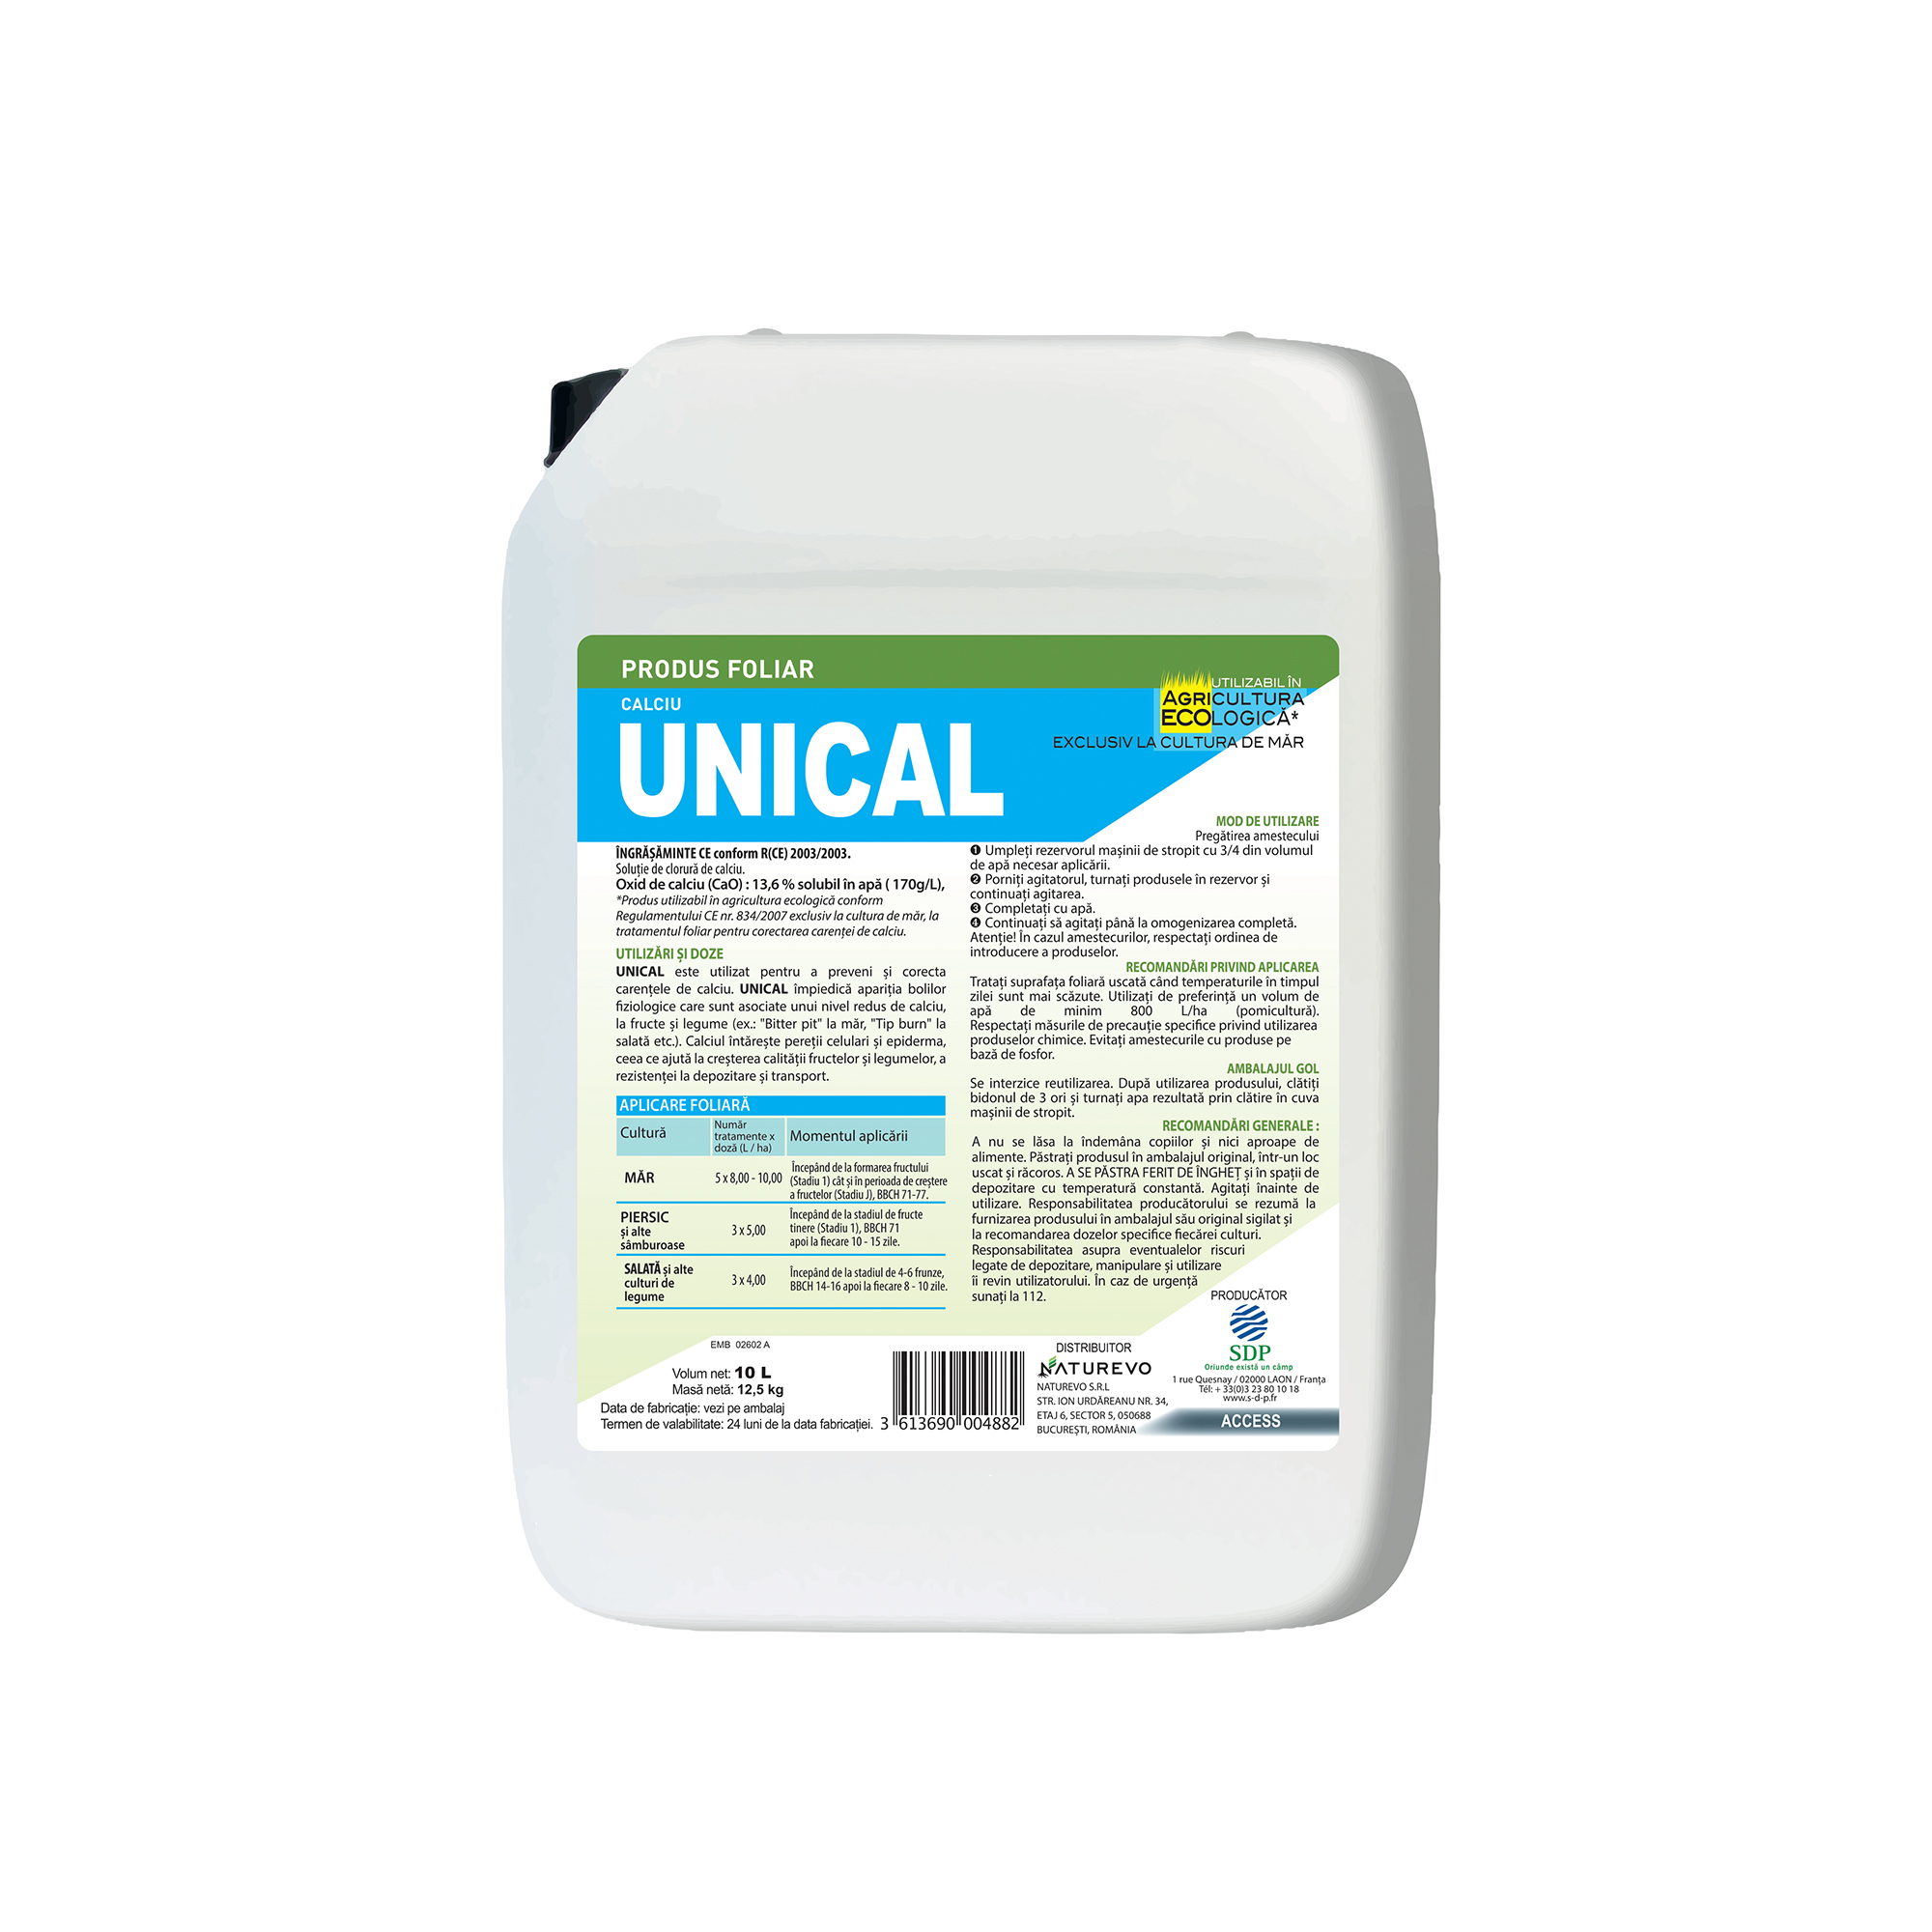 UNICAL - Ingrasamant foliar